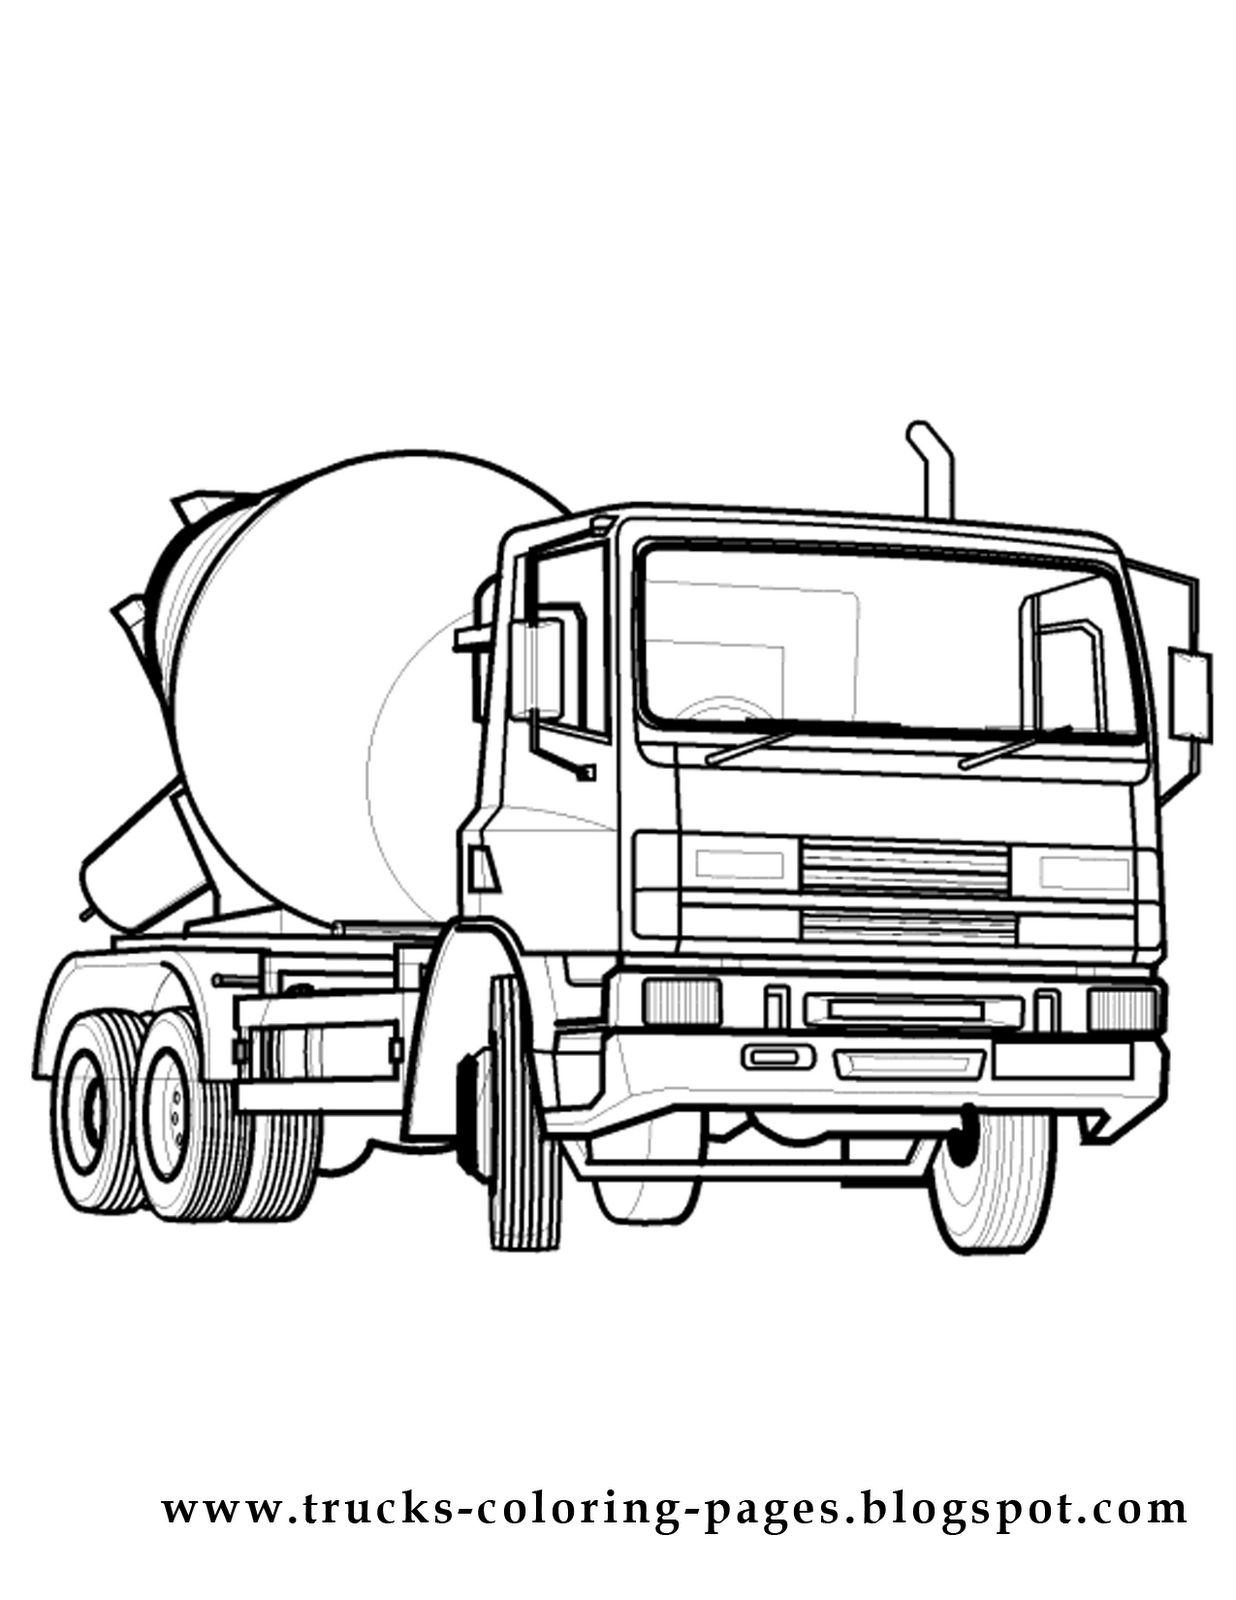 Printable Coloring Pages Of Cars And Trucks 9 Image Car And Truck Coloring Pages